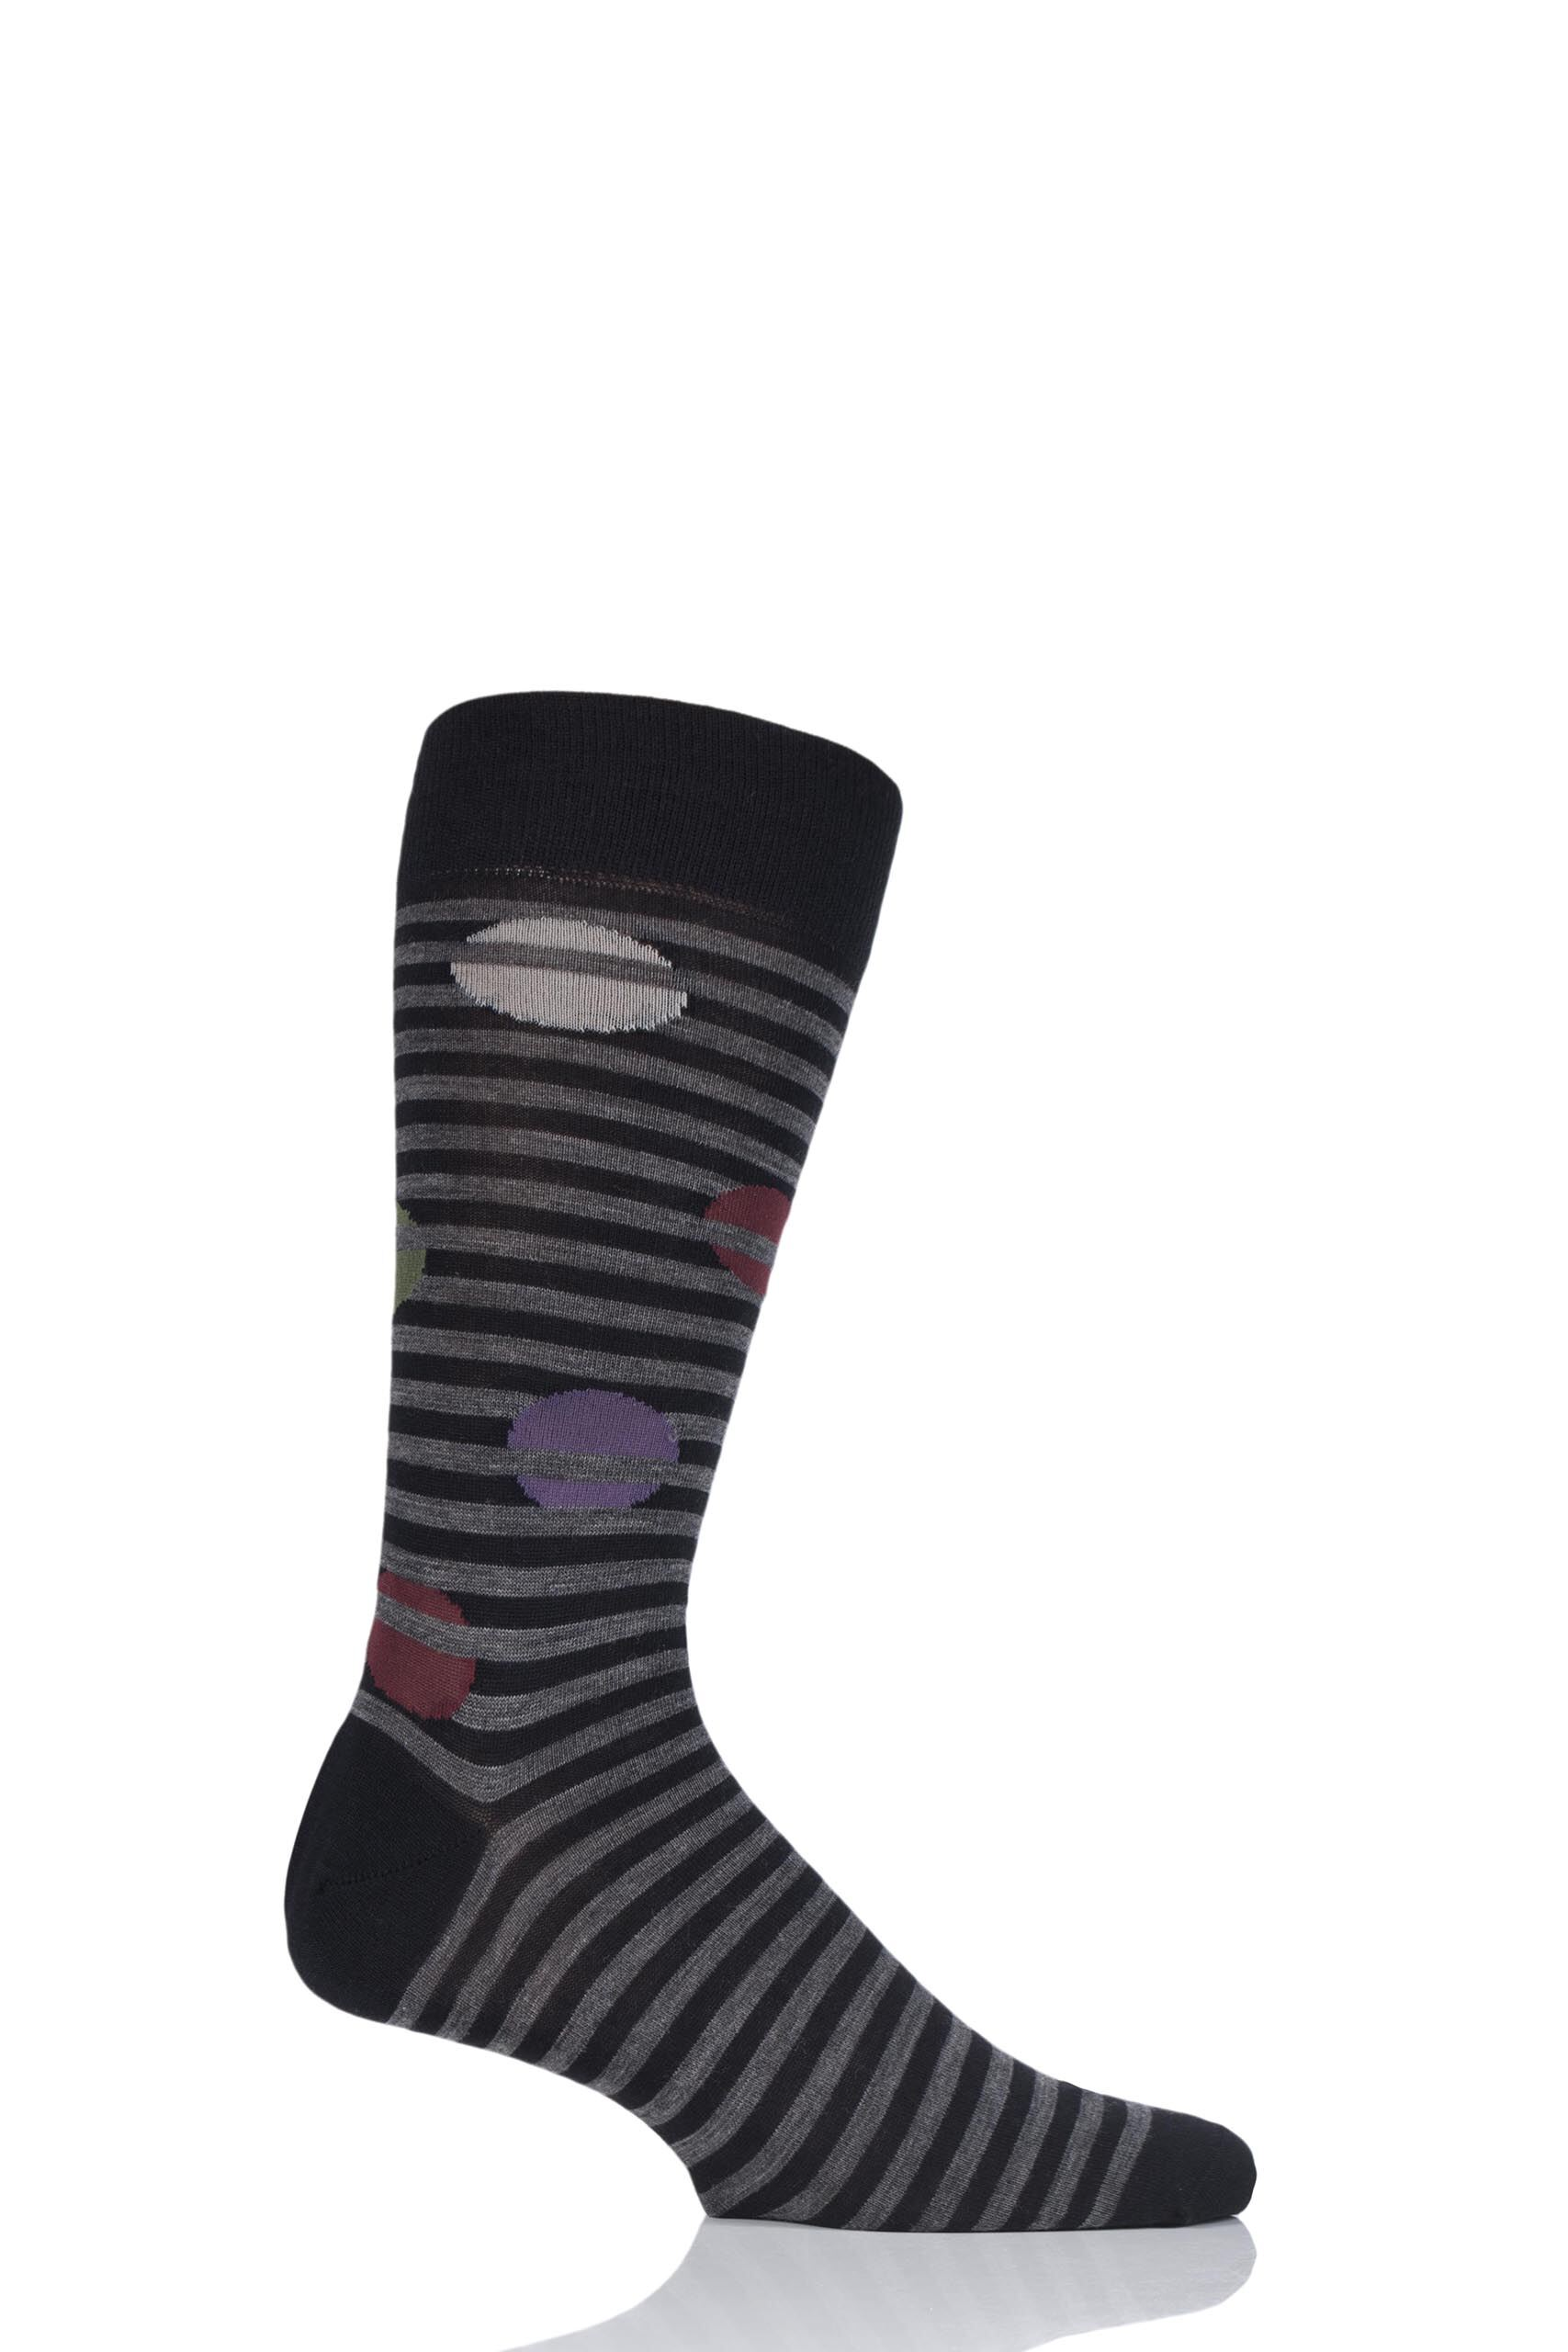 Image of 1 Pair Black Berner Spot and Stripe Merino Wool Socks Men's 10-12 Mens - Pantherella